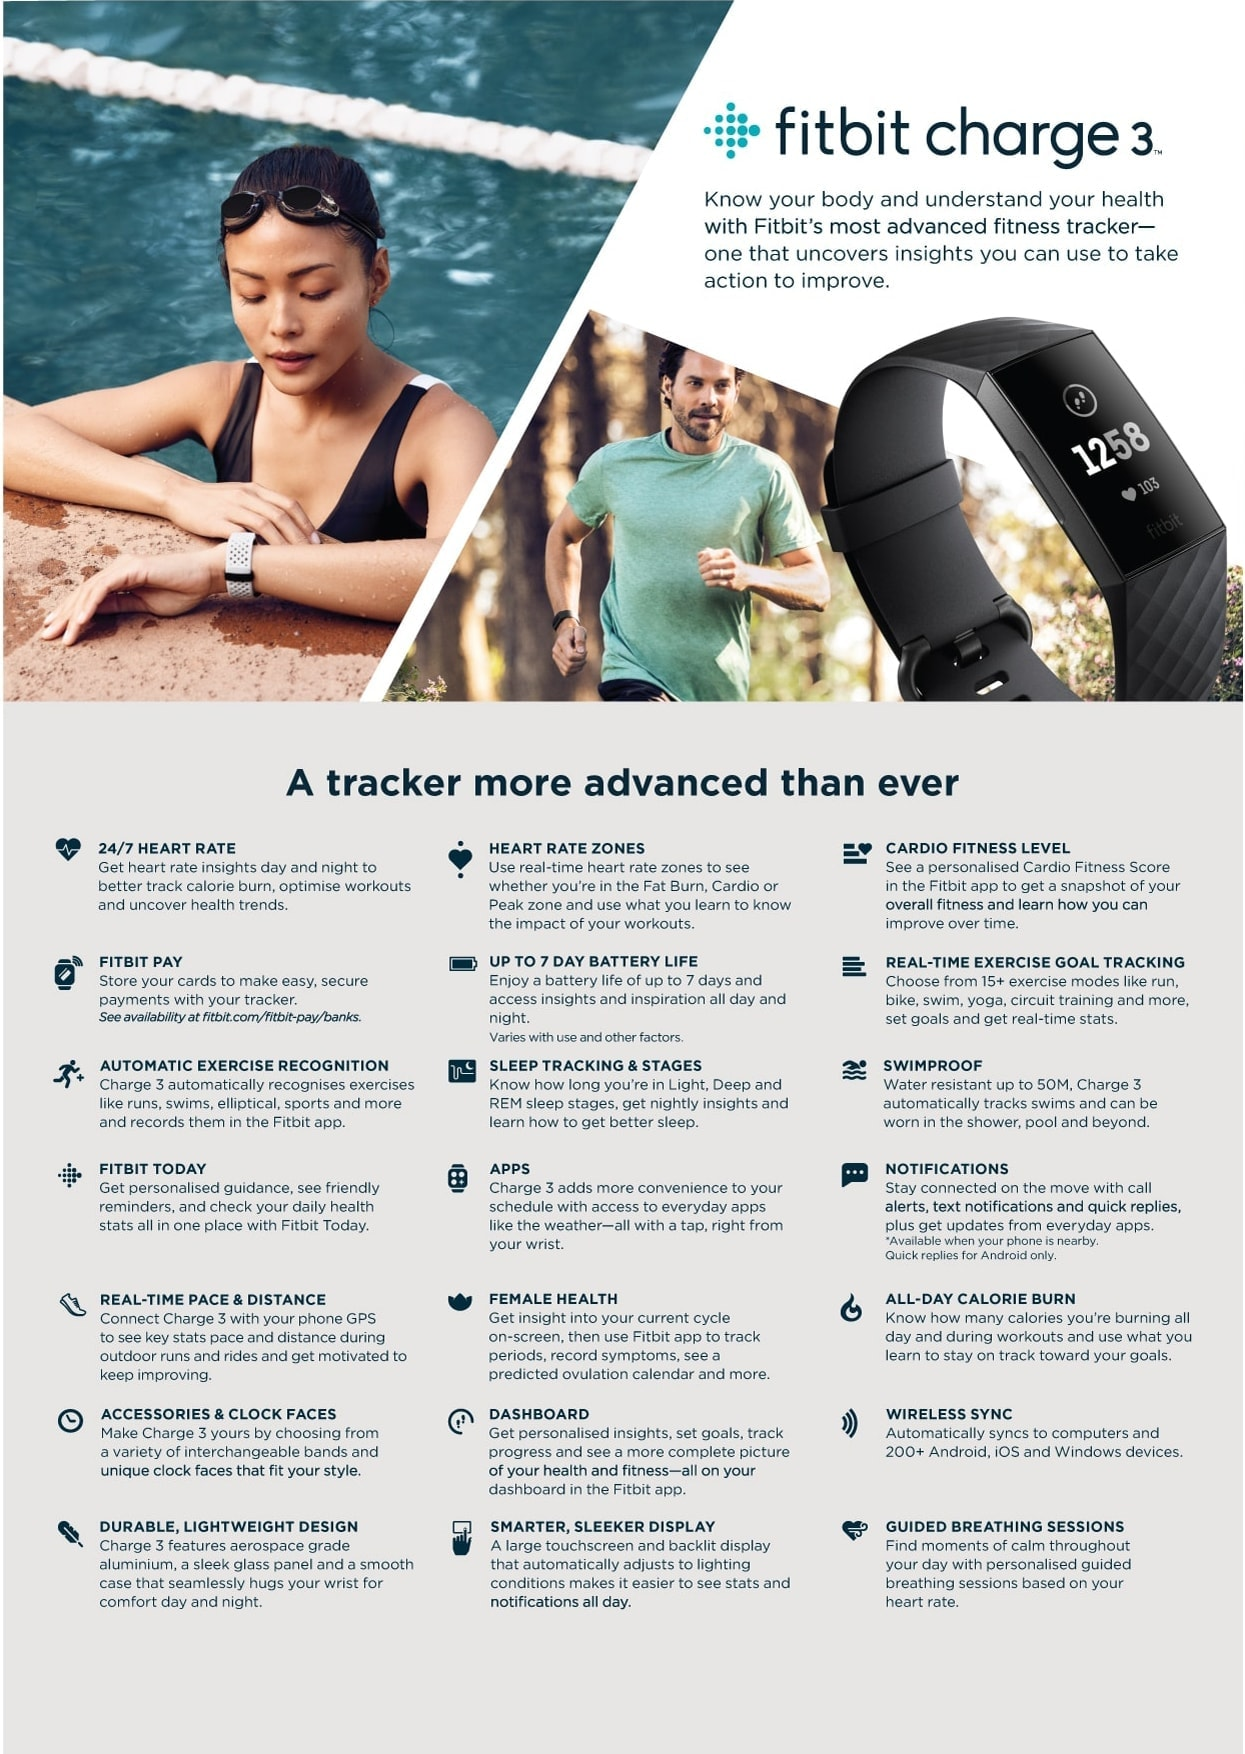 Fitbit Charge 3 Product Specifications